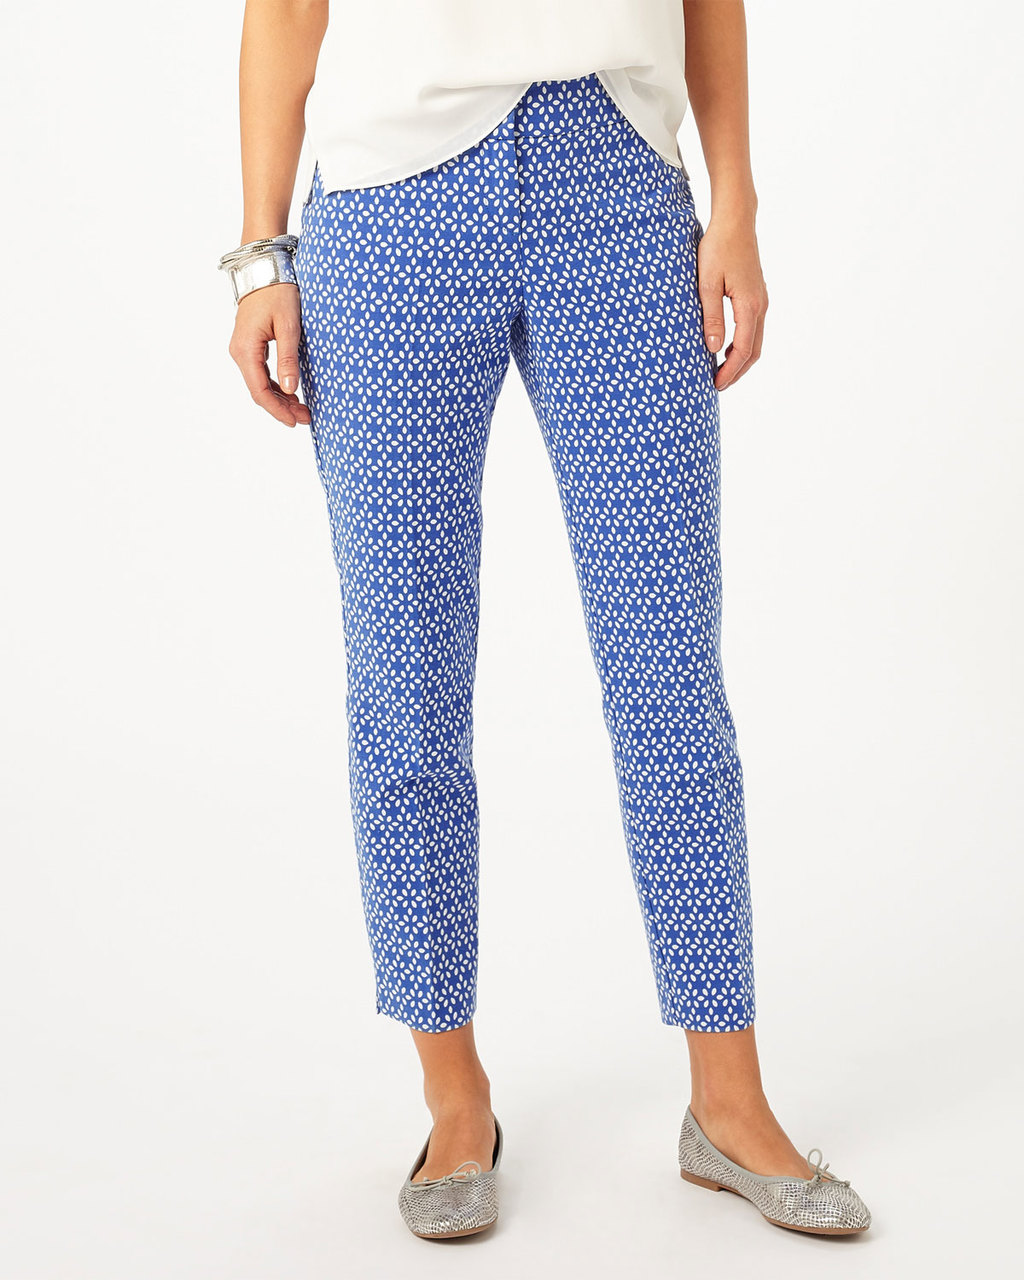 Erica Petal Trouser - style: capri; waist: mid/regular rise; secondary colour: royal blue; predominant colour: pale blue; occasions: casual, creative work; length: ankle length; fibres: cotton - mix; fit: slim leg; pattern type: fabric; pattern: patterned/print; texture group: woven light midweight; pattern size: light/subtle (bottom); season: s/s 2016